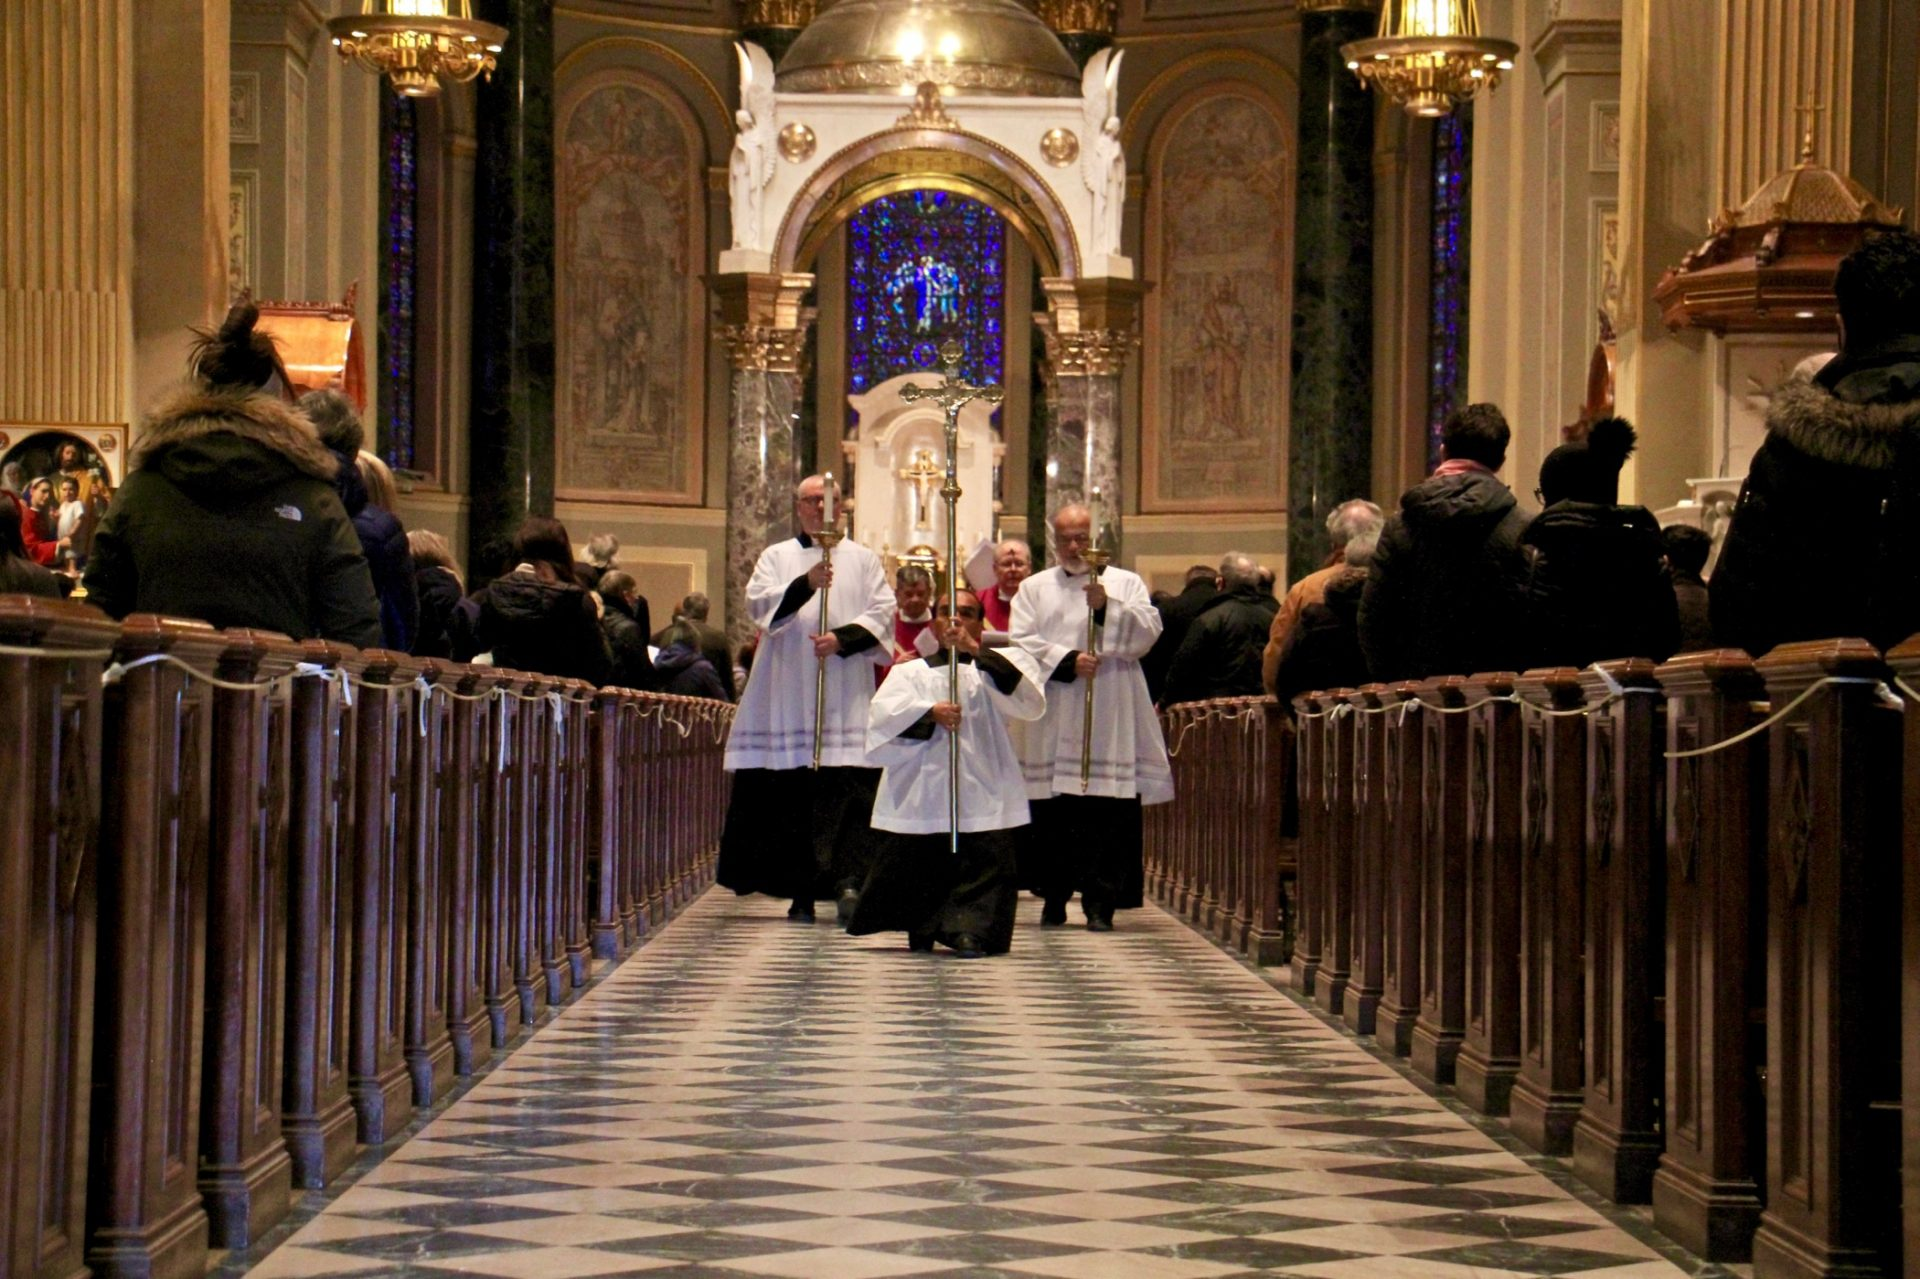 Ash Wednesday Mass is celebrated at the Basilica of Saints Peter and Paul in Philadelphia